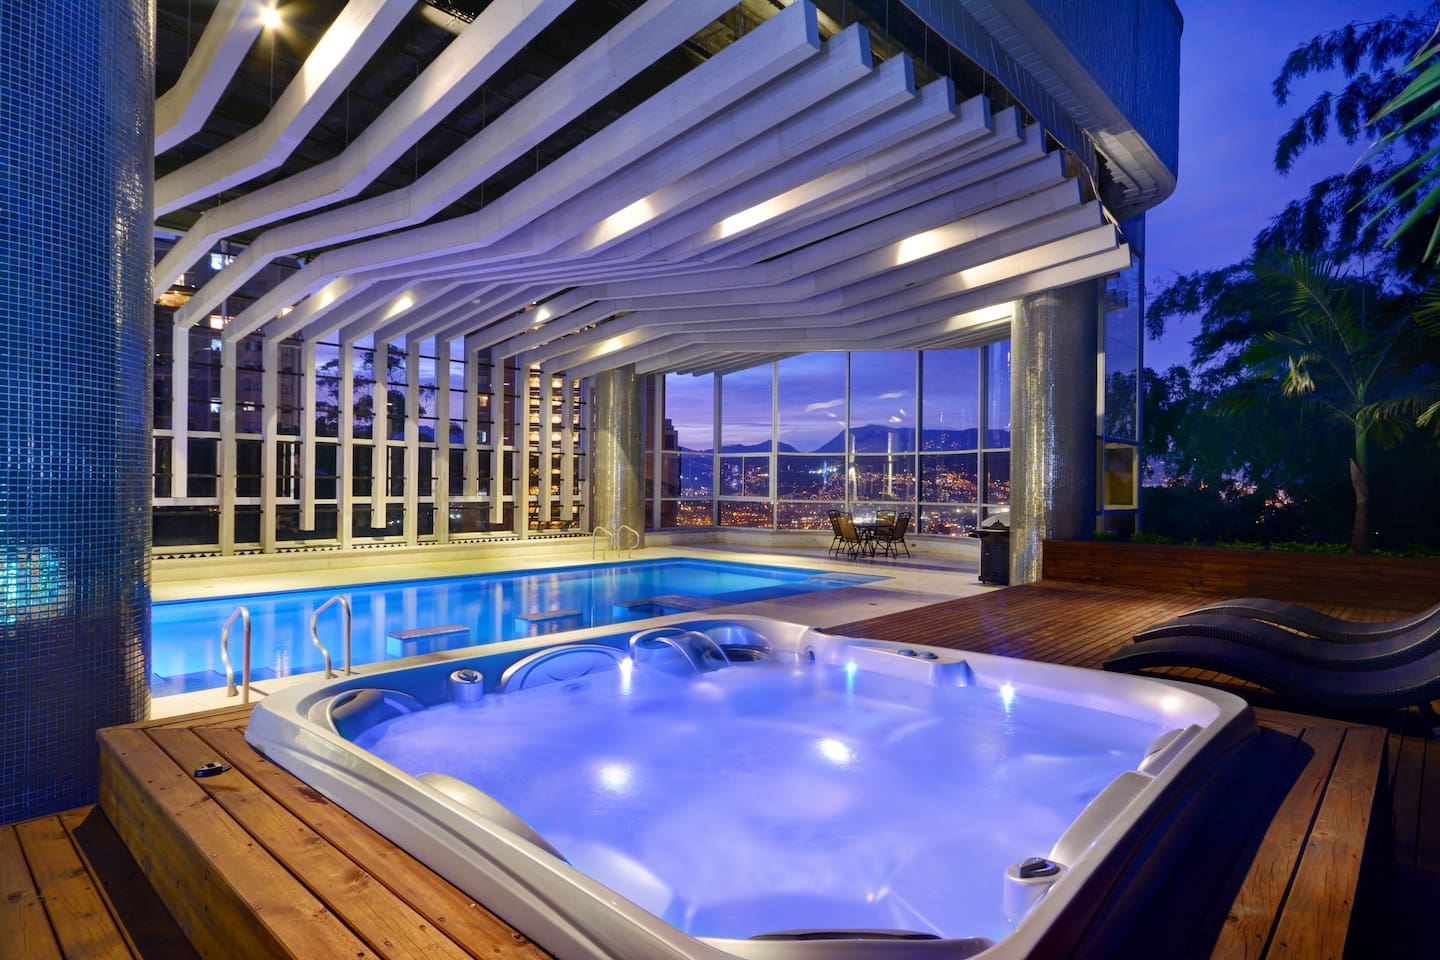 Jacuzzi, Pool, Deck